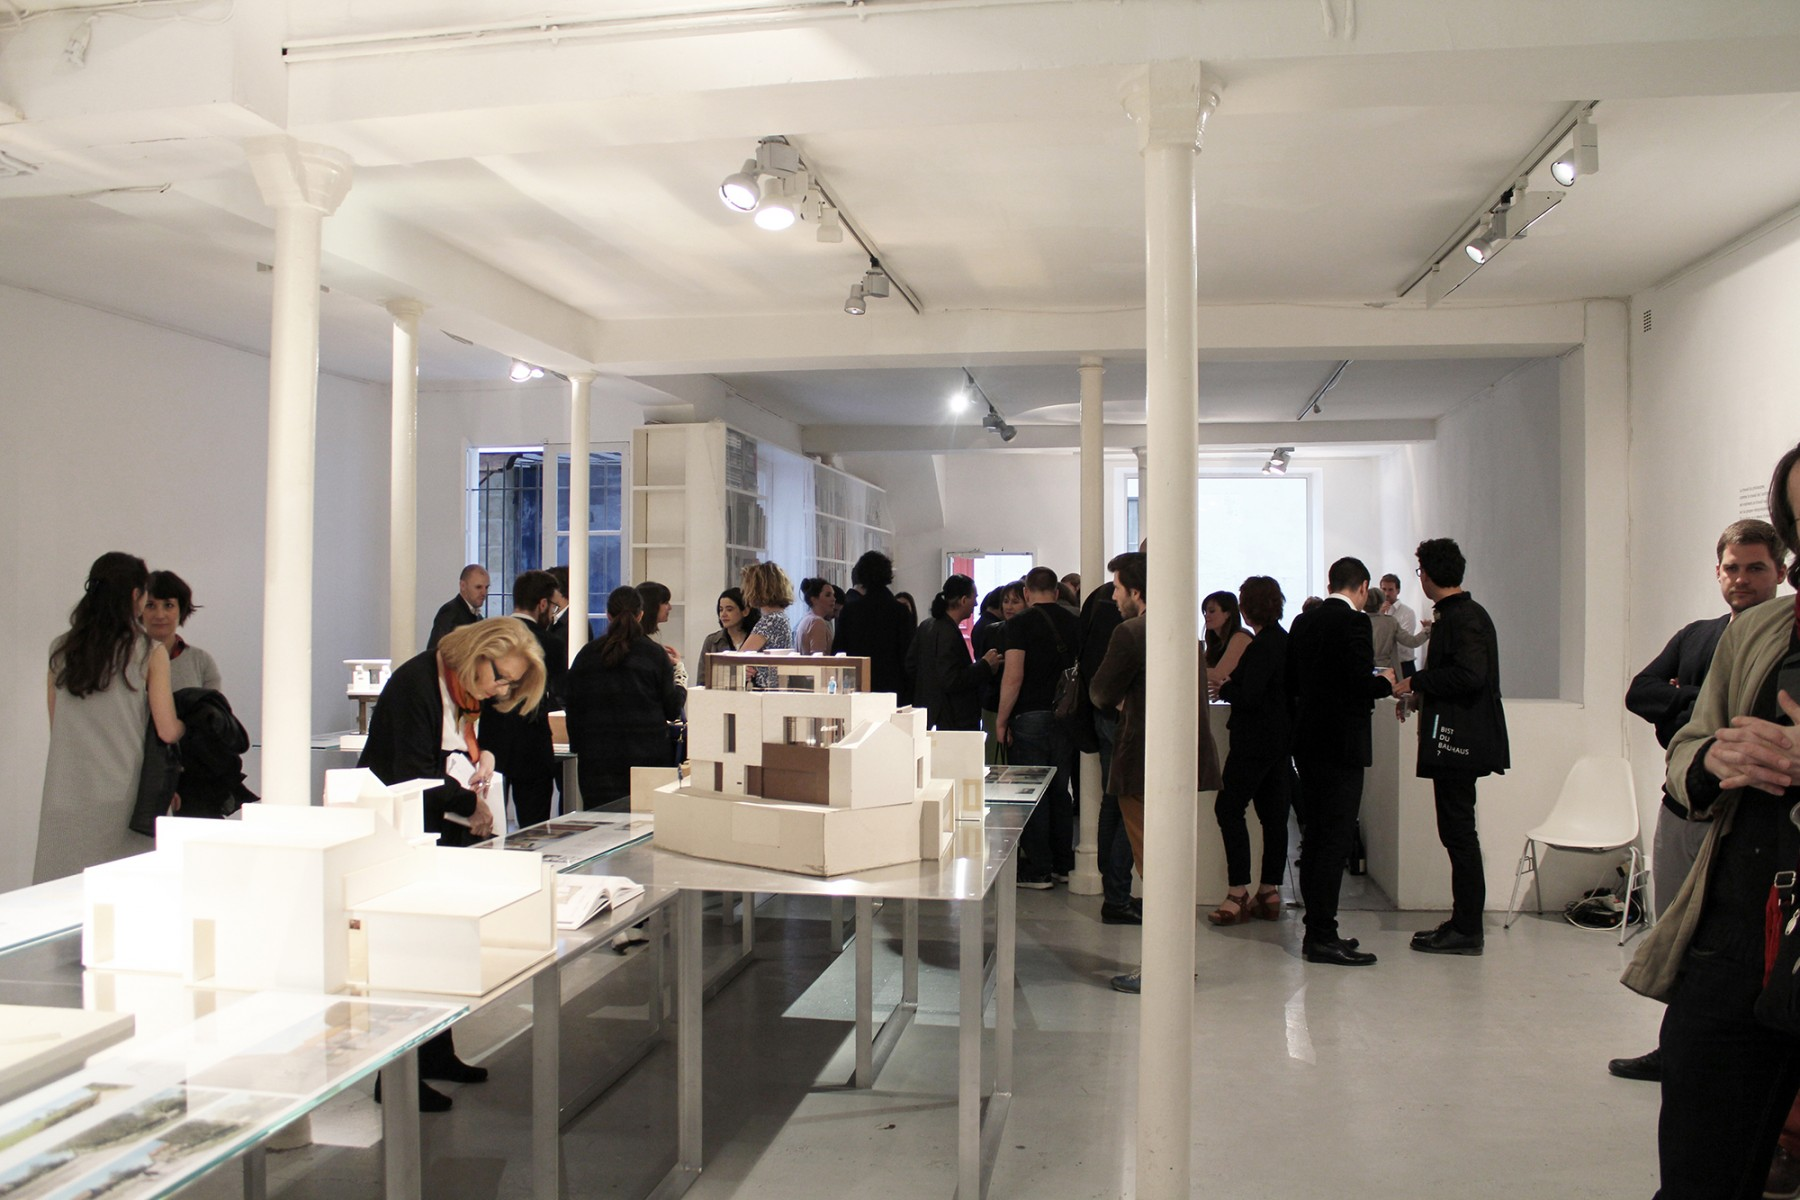 Jamie-Fobert-Architects-working-in-architecture-exhibition-Galerie-d'Architecture